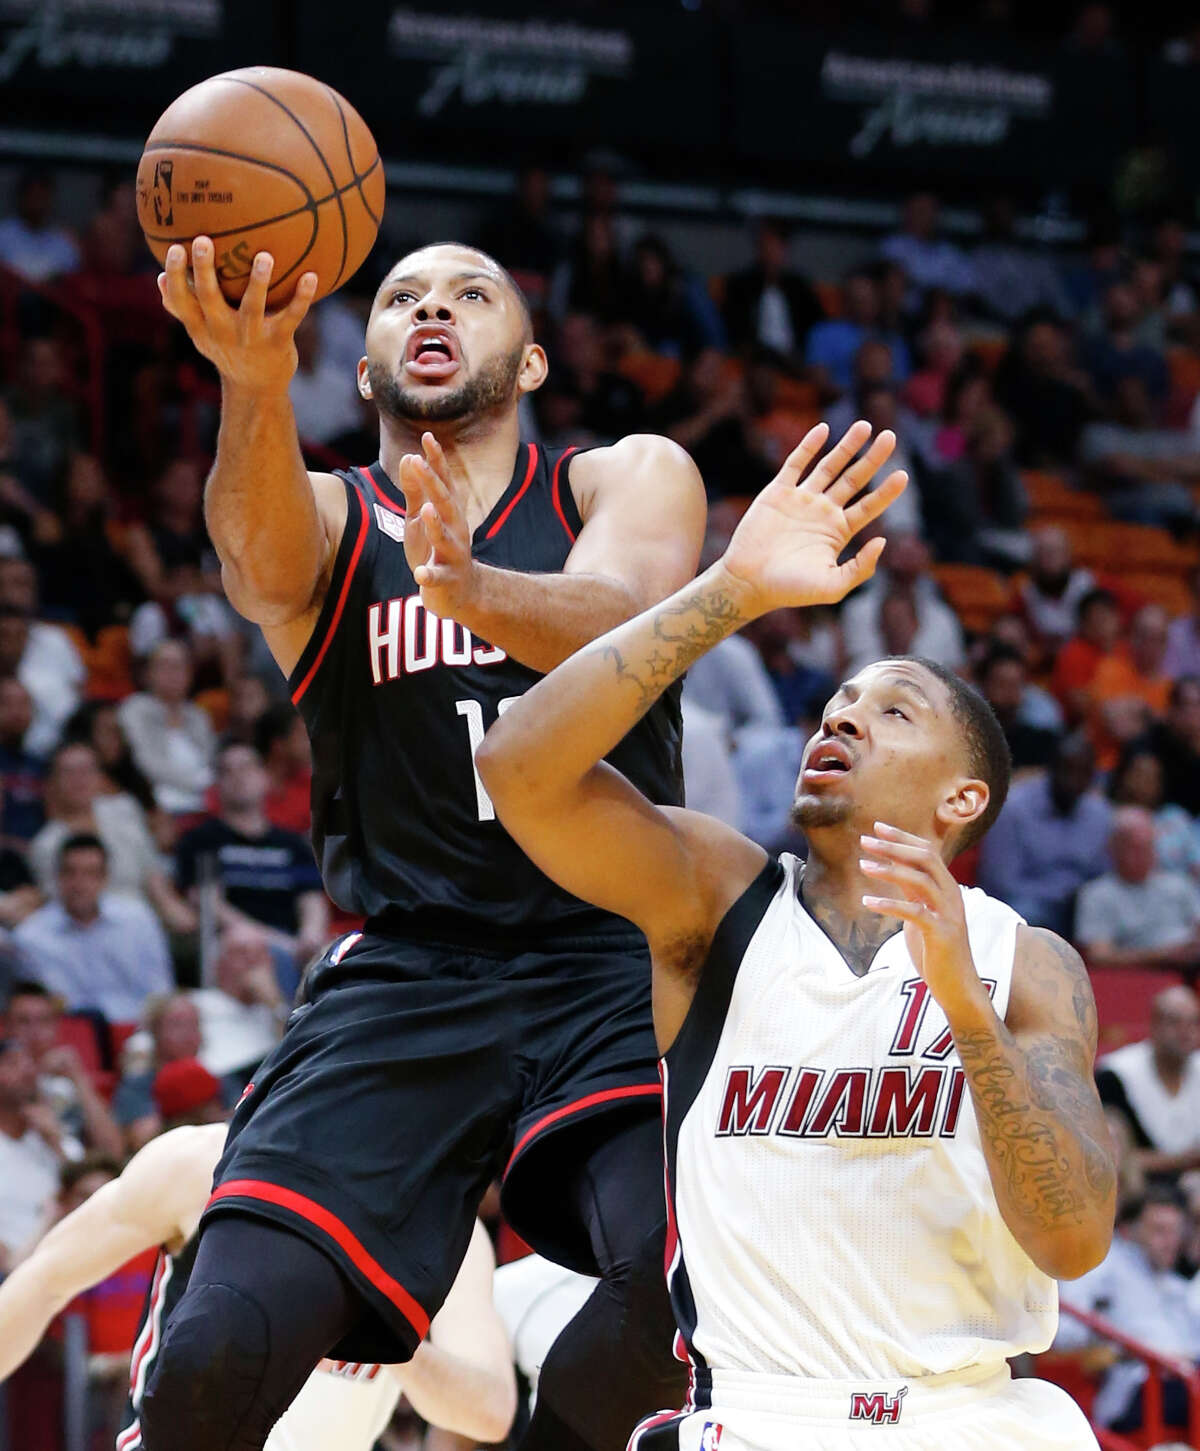 Houston Rockets guard Eric Gordon goes up for a shot against Miami Heat guard Rodney McGruder during the first half of an NBA basketball game, Tuesday, Jan. 17, 2017, in Miami. (AP Photo/Wilfredo Lee)